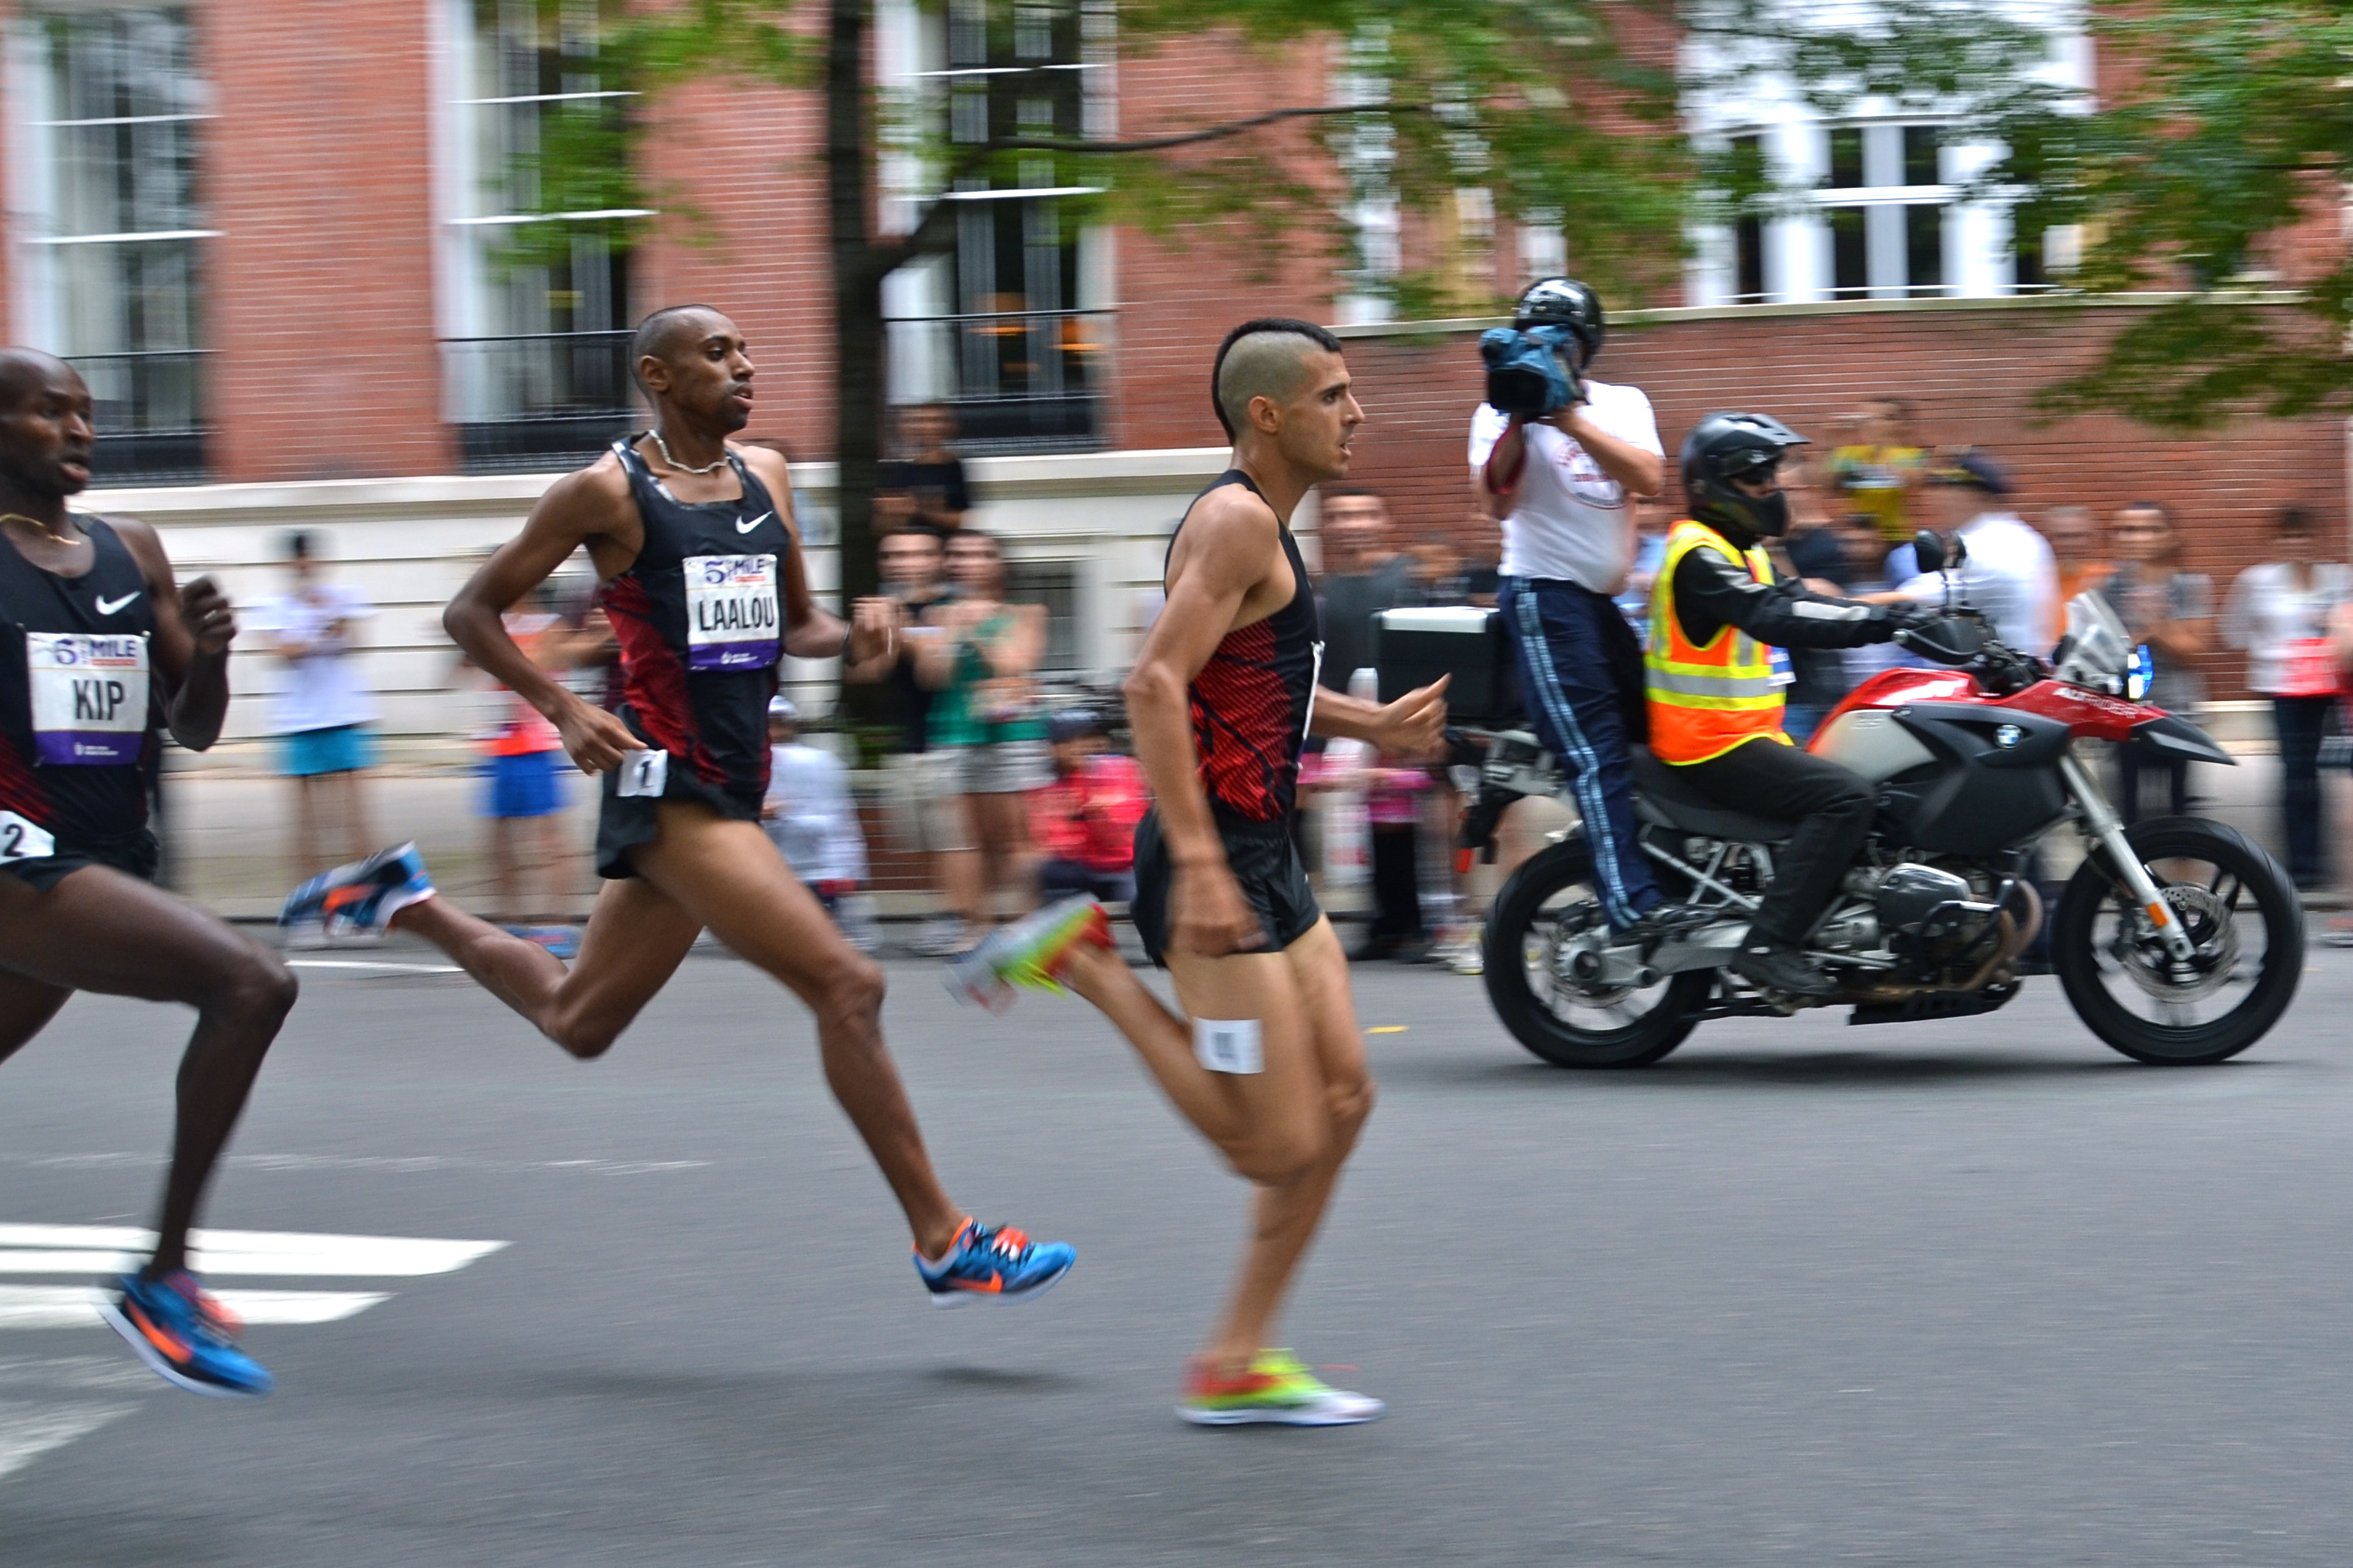 Lagat kicks, chasing down Laalou and Torrence